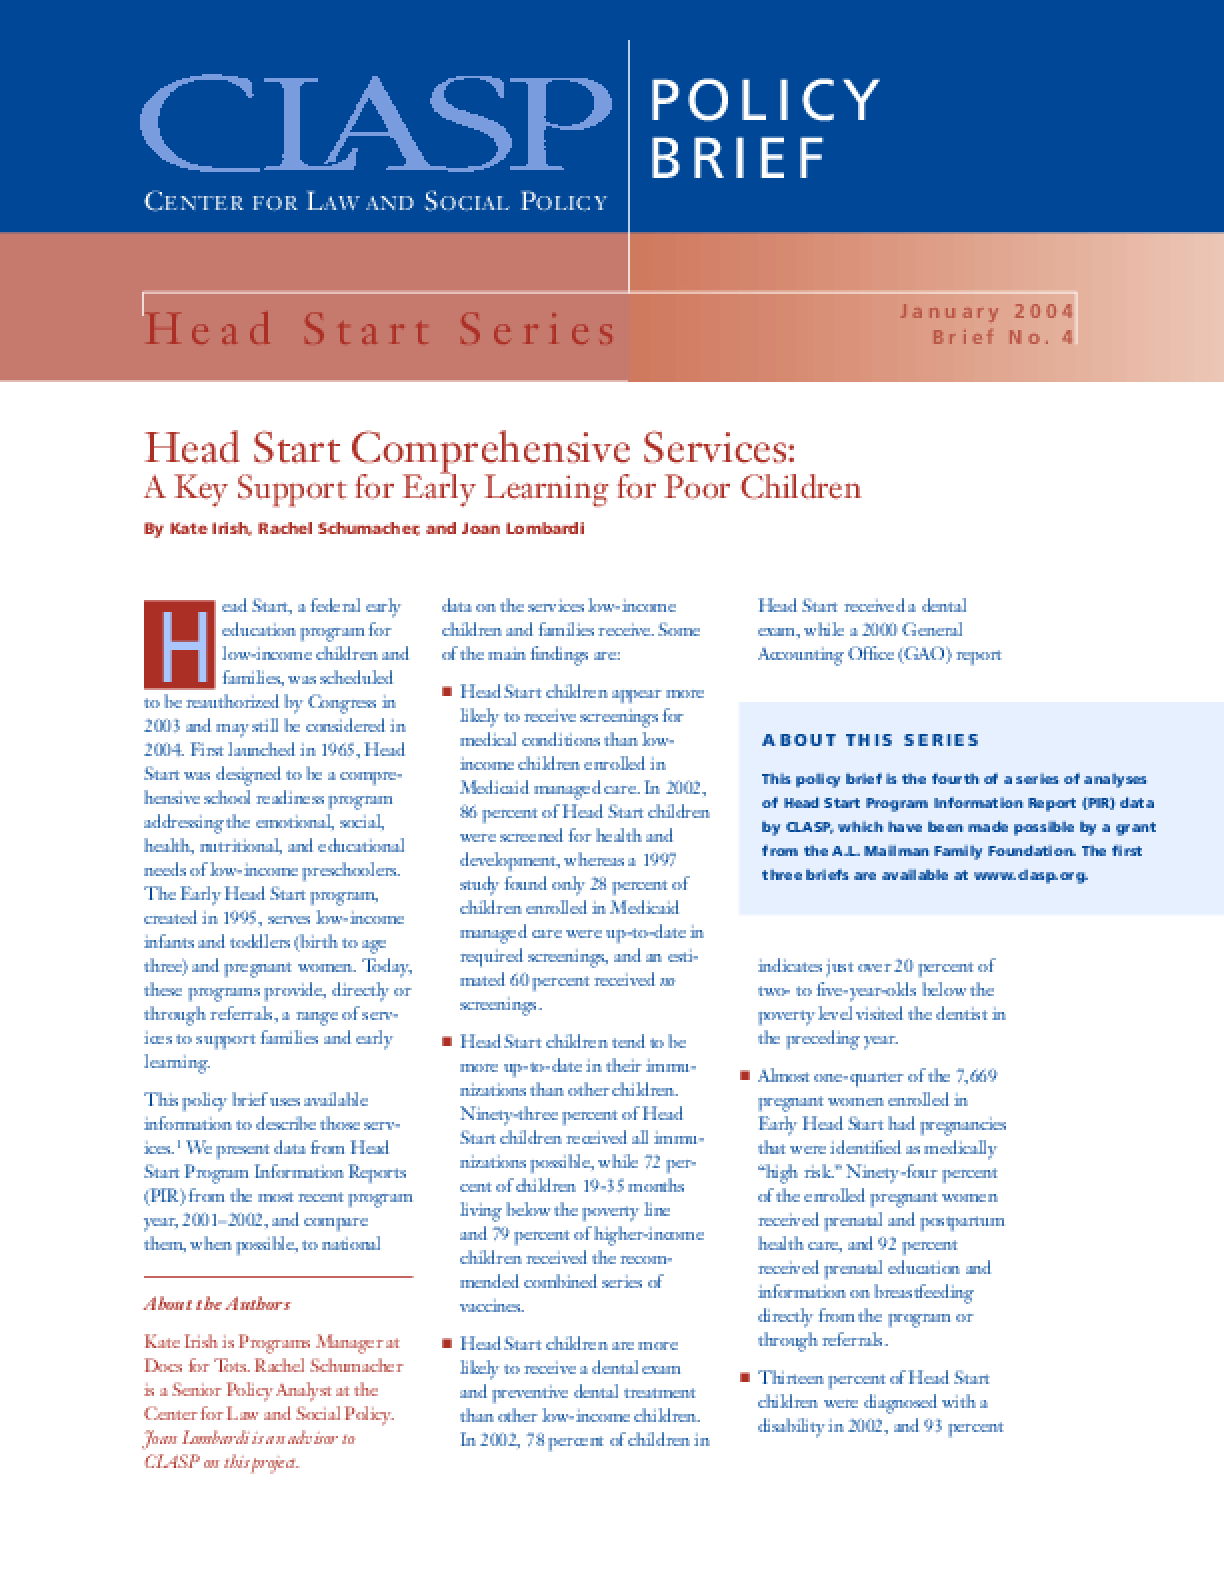 Head Start Comprehensive Services: A Key Support for Early Learning for Poor Children